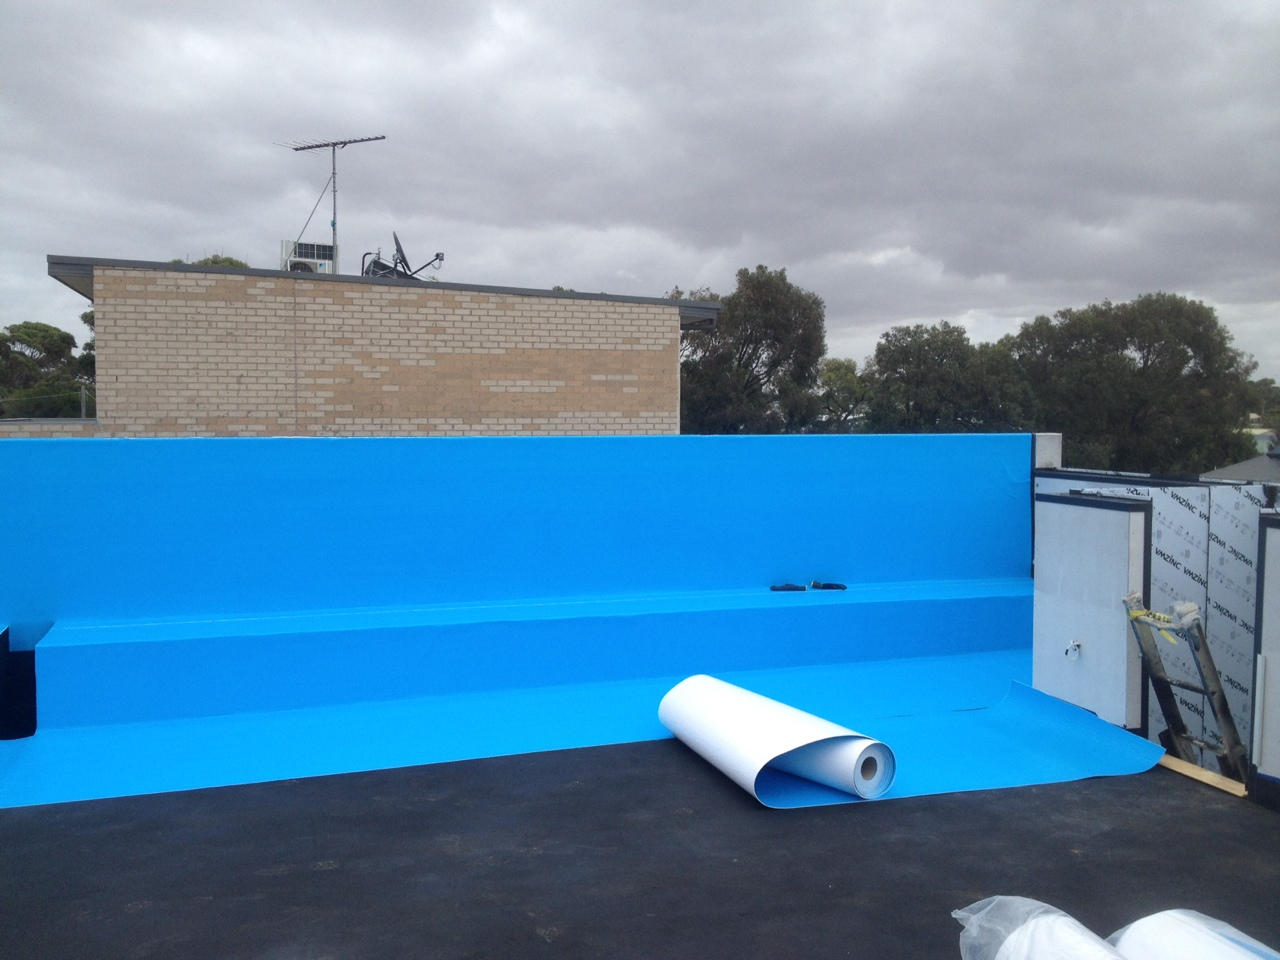 Waterproofing Membrane For Protection : Liquid rubber membranes retaining wall waterproofing